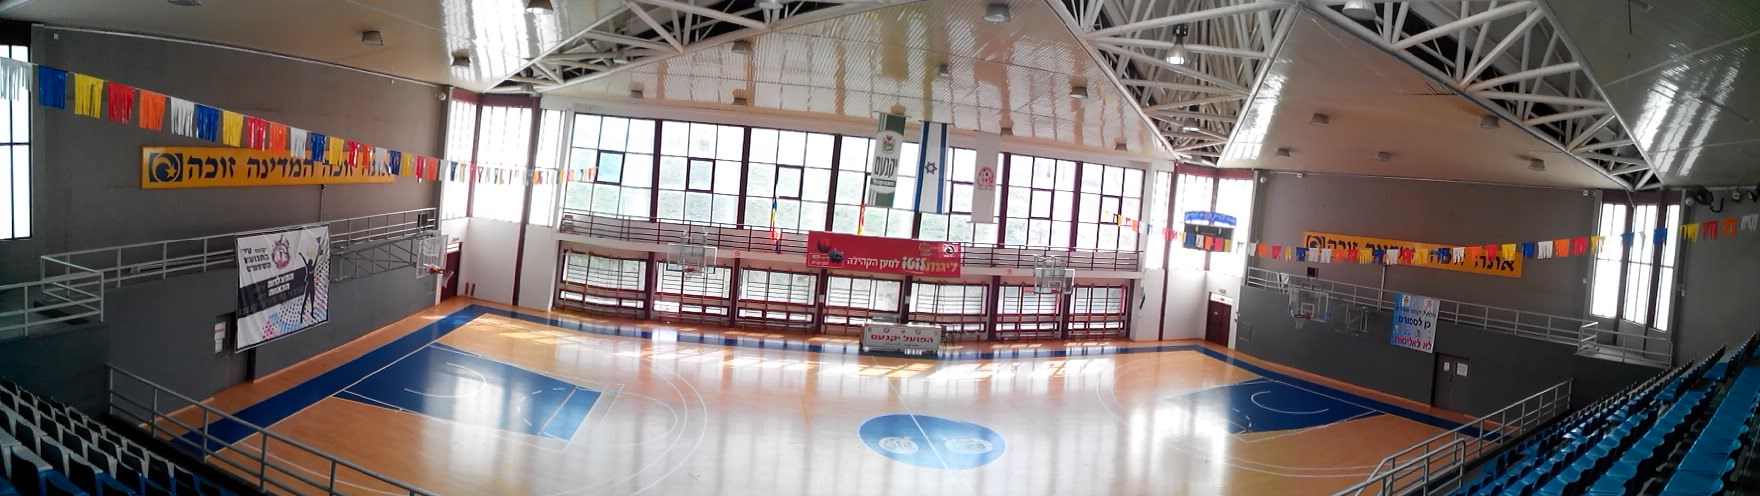 File:Hapoel Yokneam Indoor Basketball Courts.jpg - Wikimedia Commons